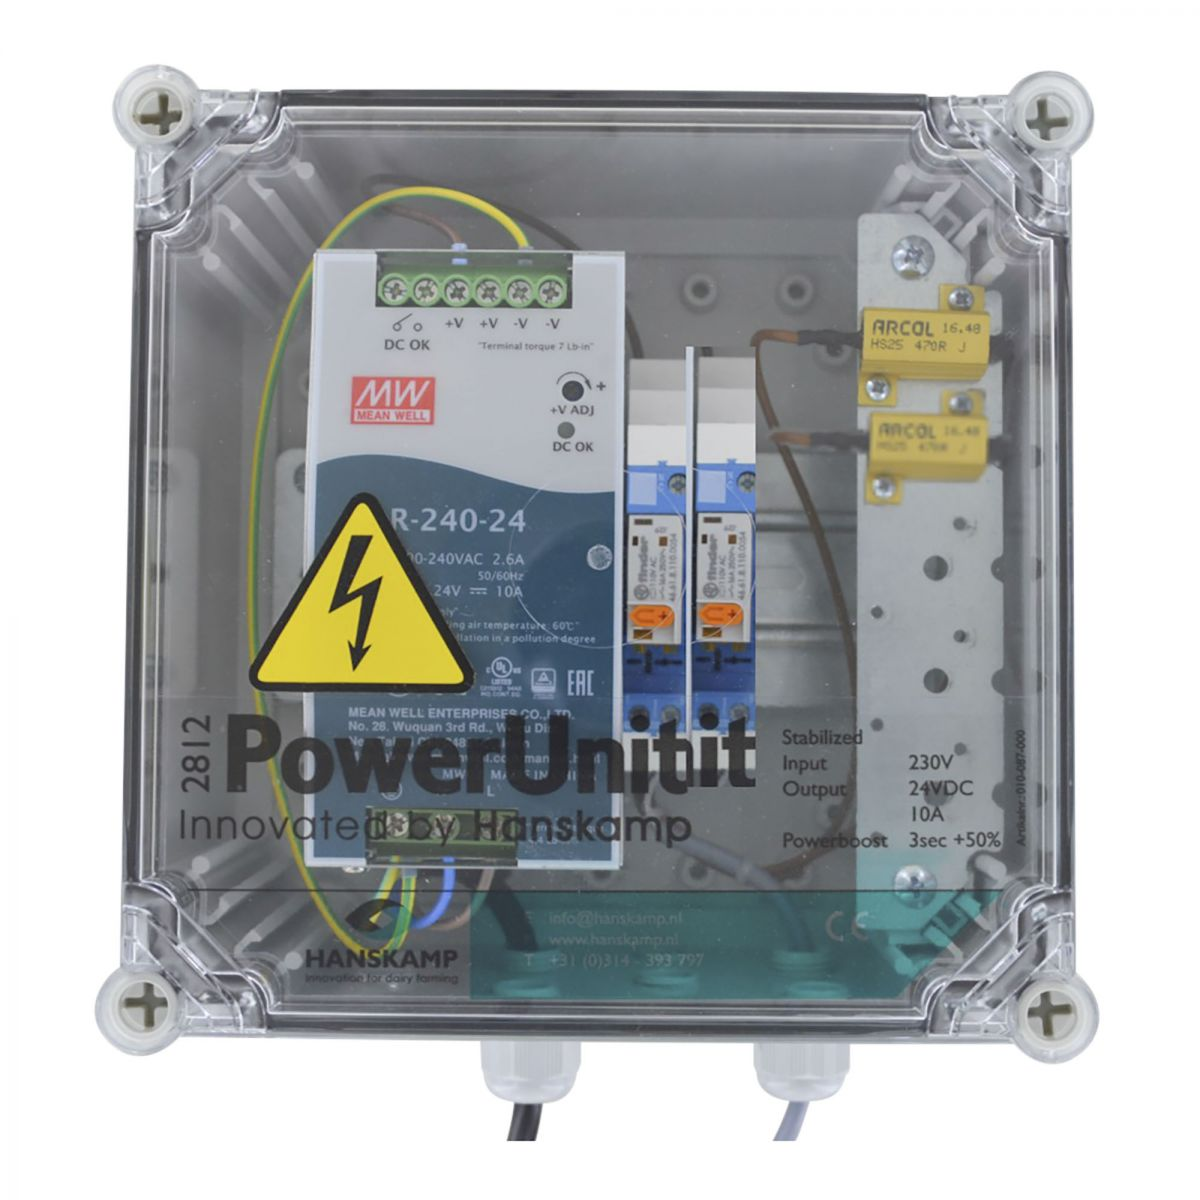 powerunit 24v dc 10a with relay 115v and resistor 2 types of food